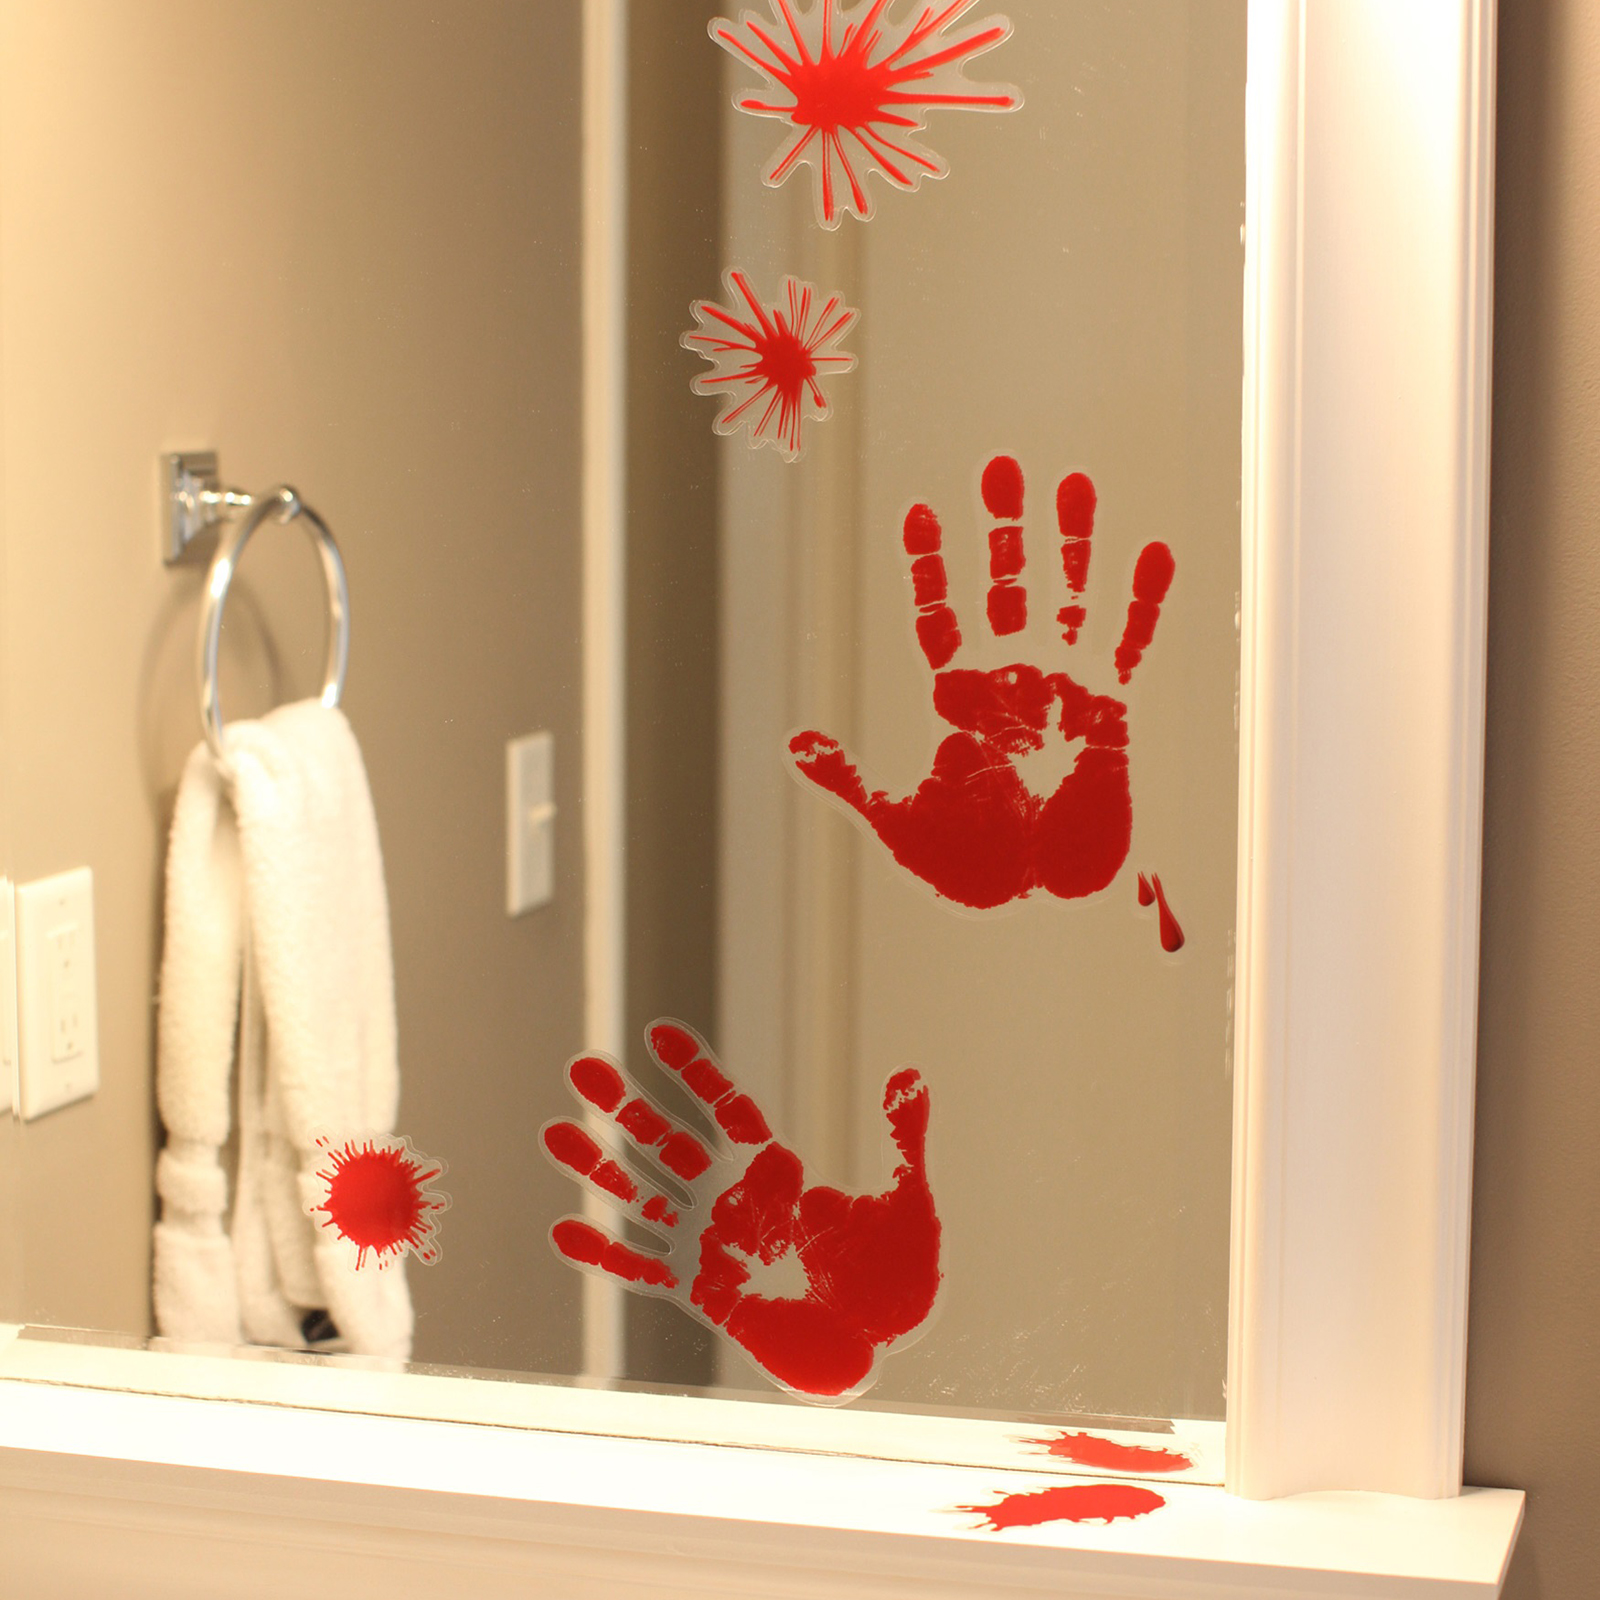 red hand print bloody splatter marks window clings halloween